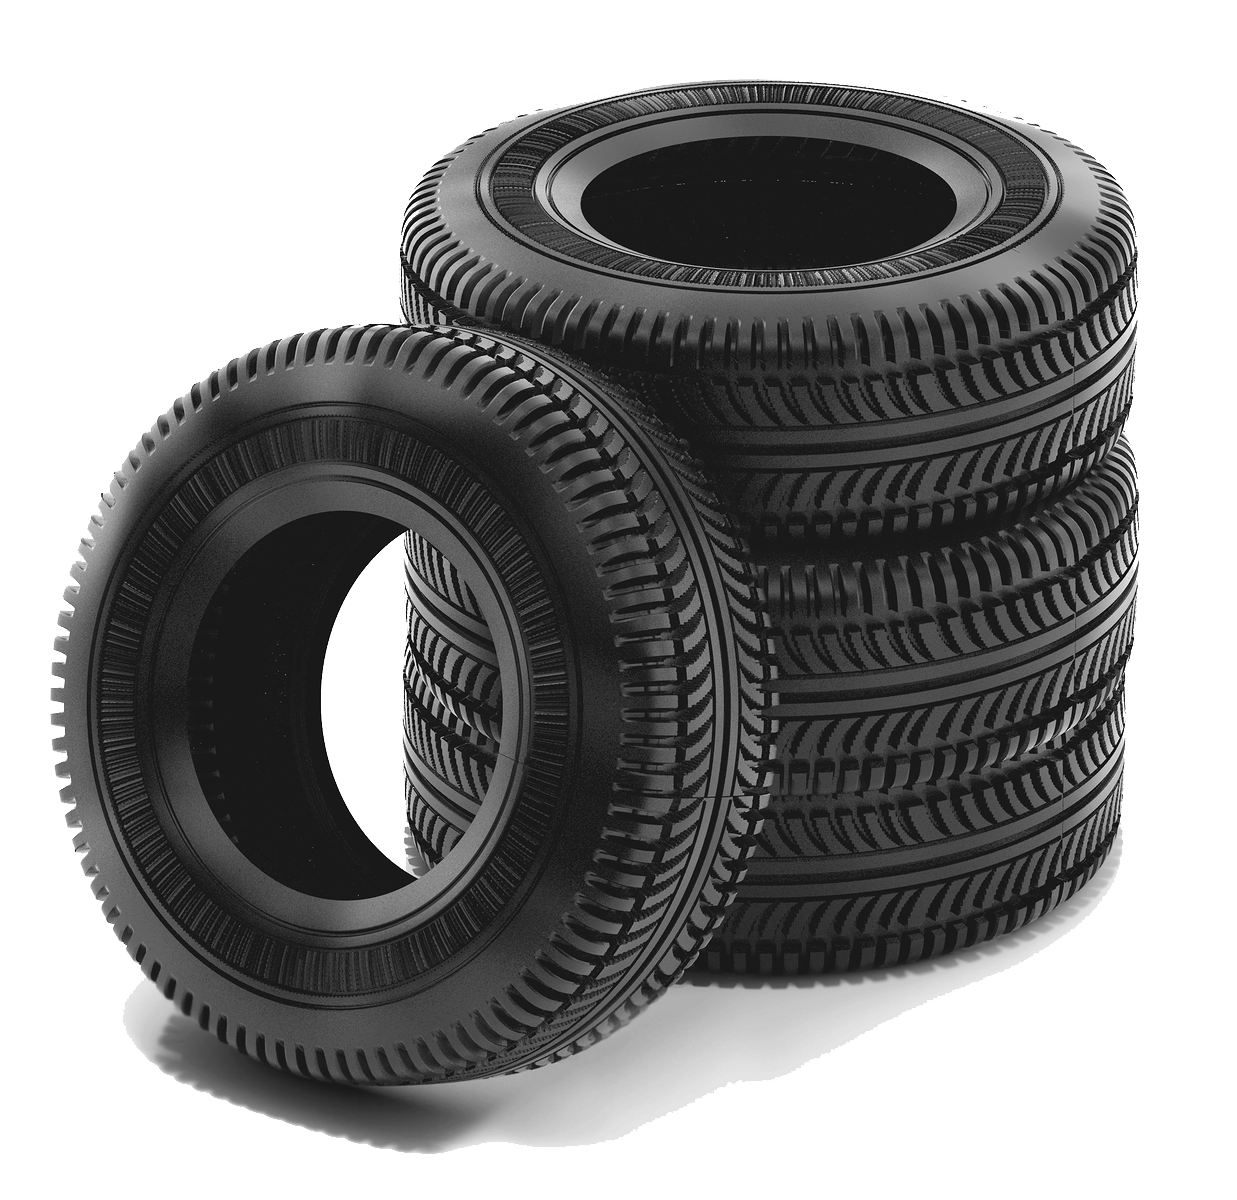 PNG Tire - 58522